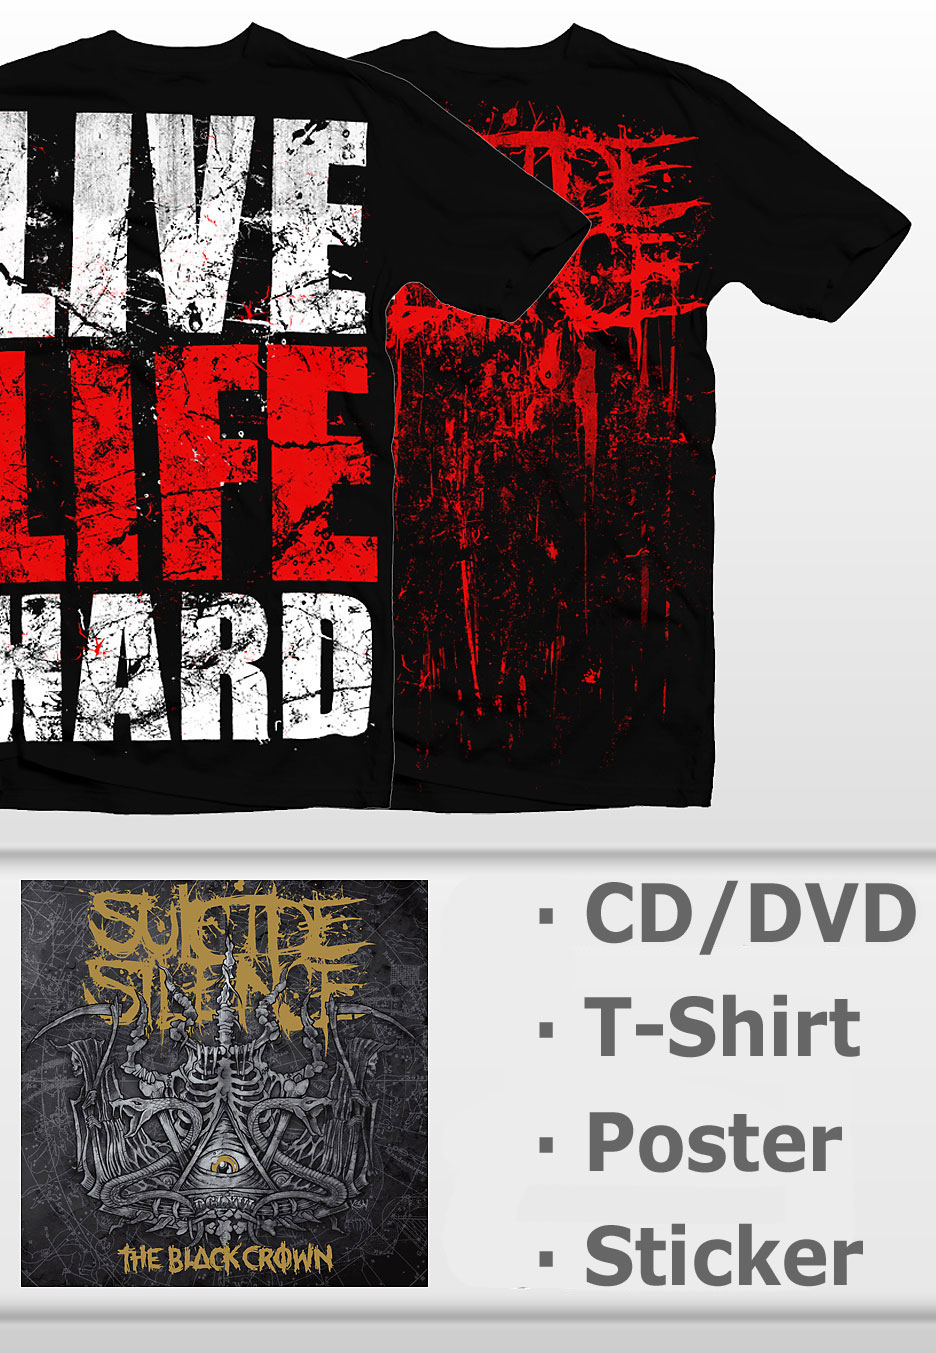 9c45e5eaa Suicide Silence - Black Crown   Live Hard - Special Pack - CDs ...